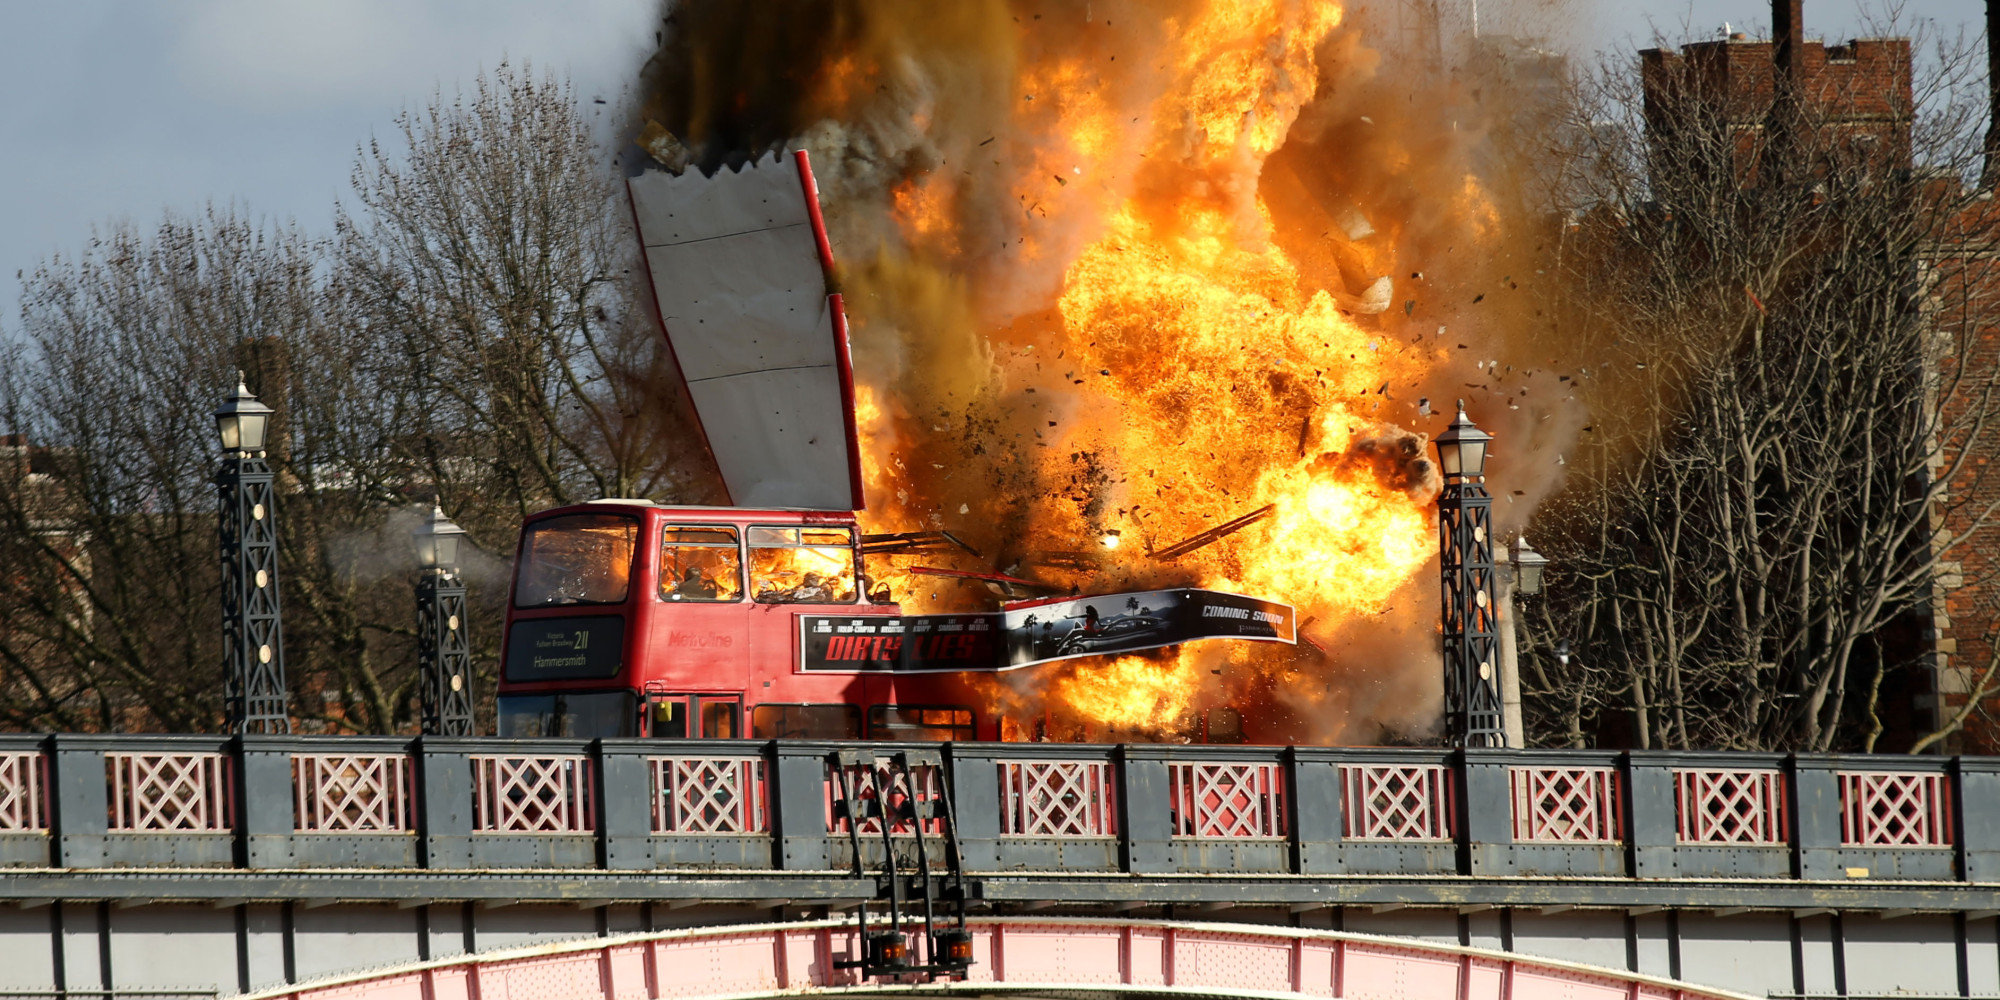 London Bus Explosion On Lambeth Bridge Was Actually Stunt For Latest Jackie Chan Film